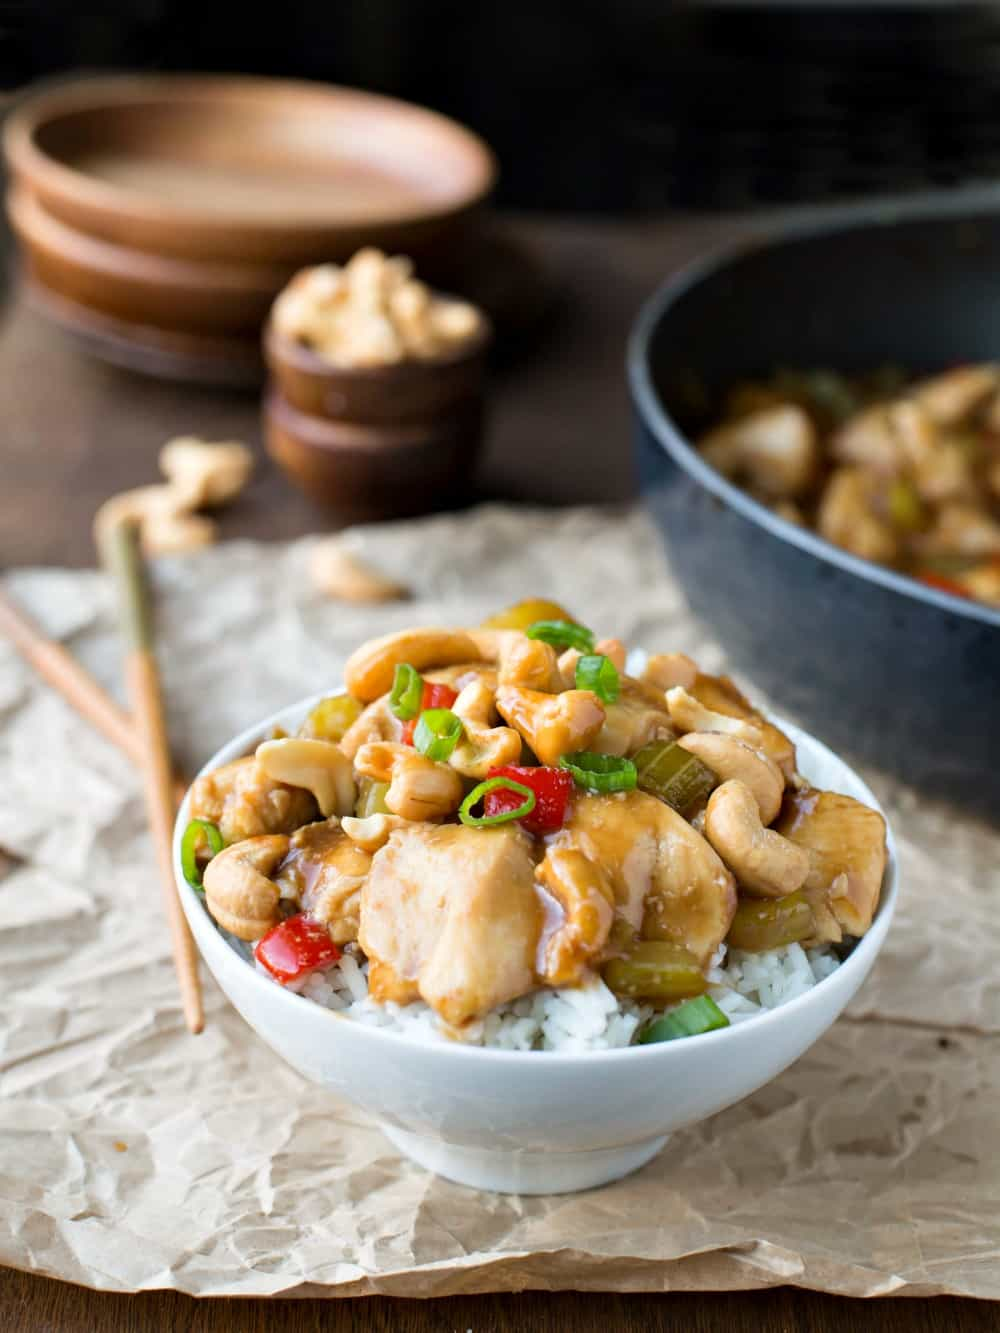 Bowl of cashew chicken topped with cashews and sliced green onions